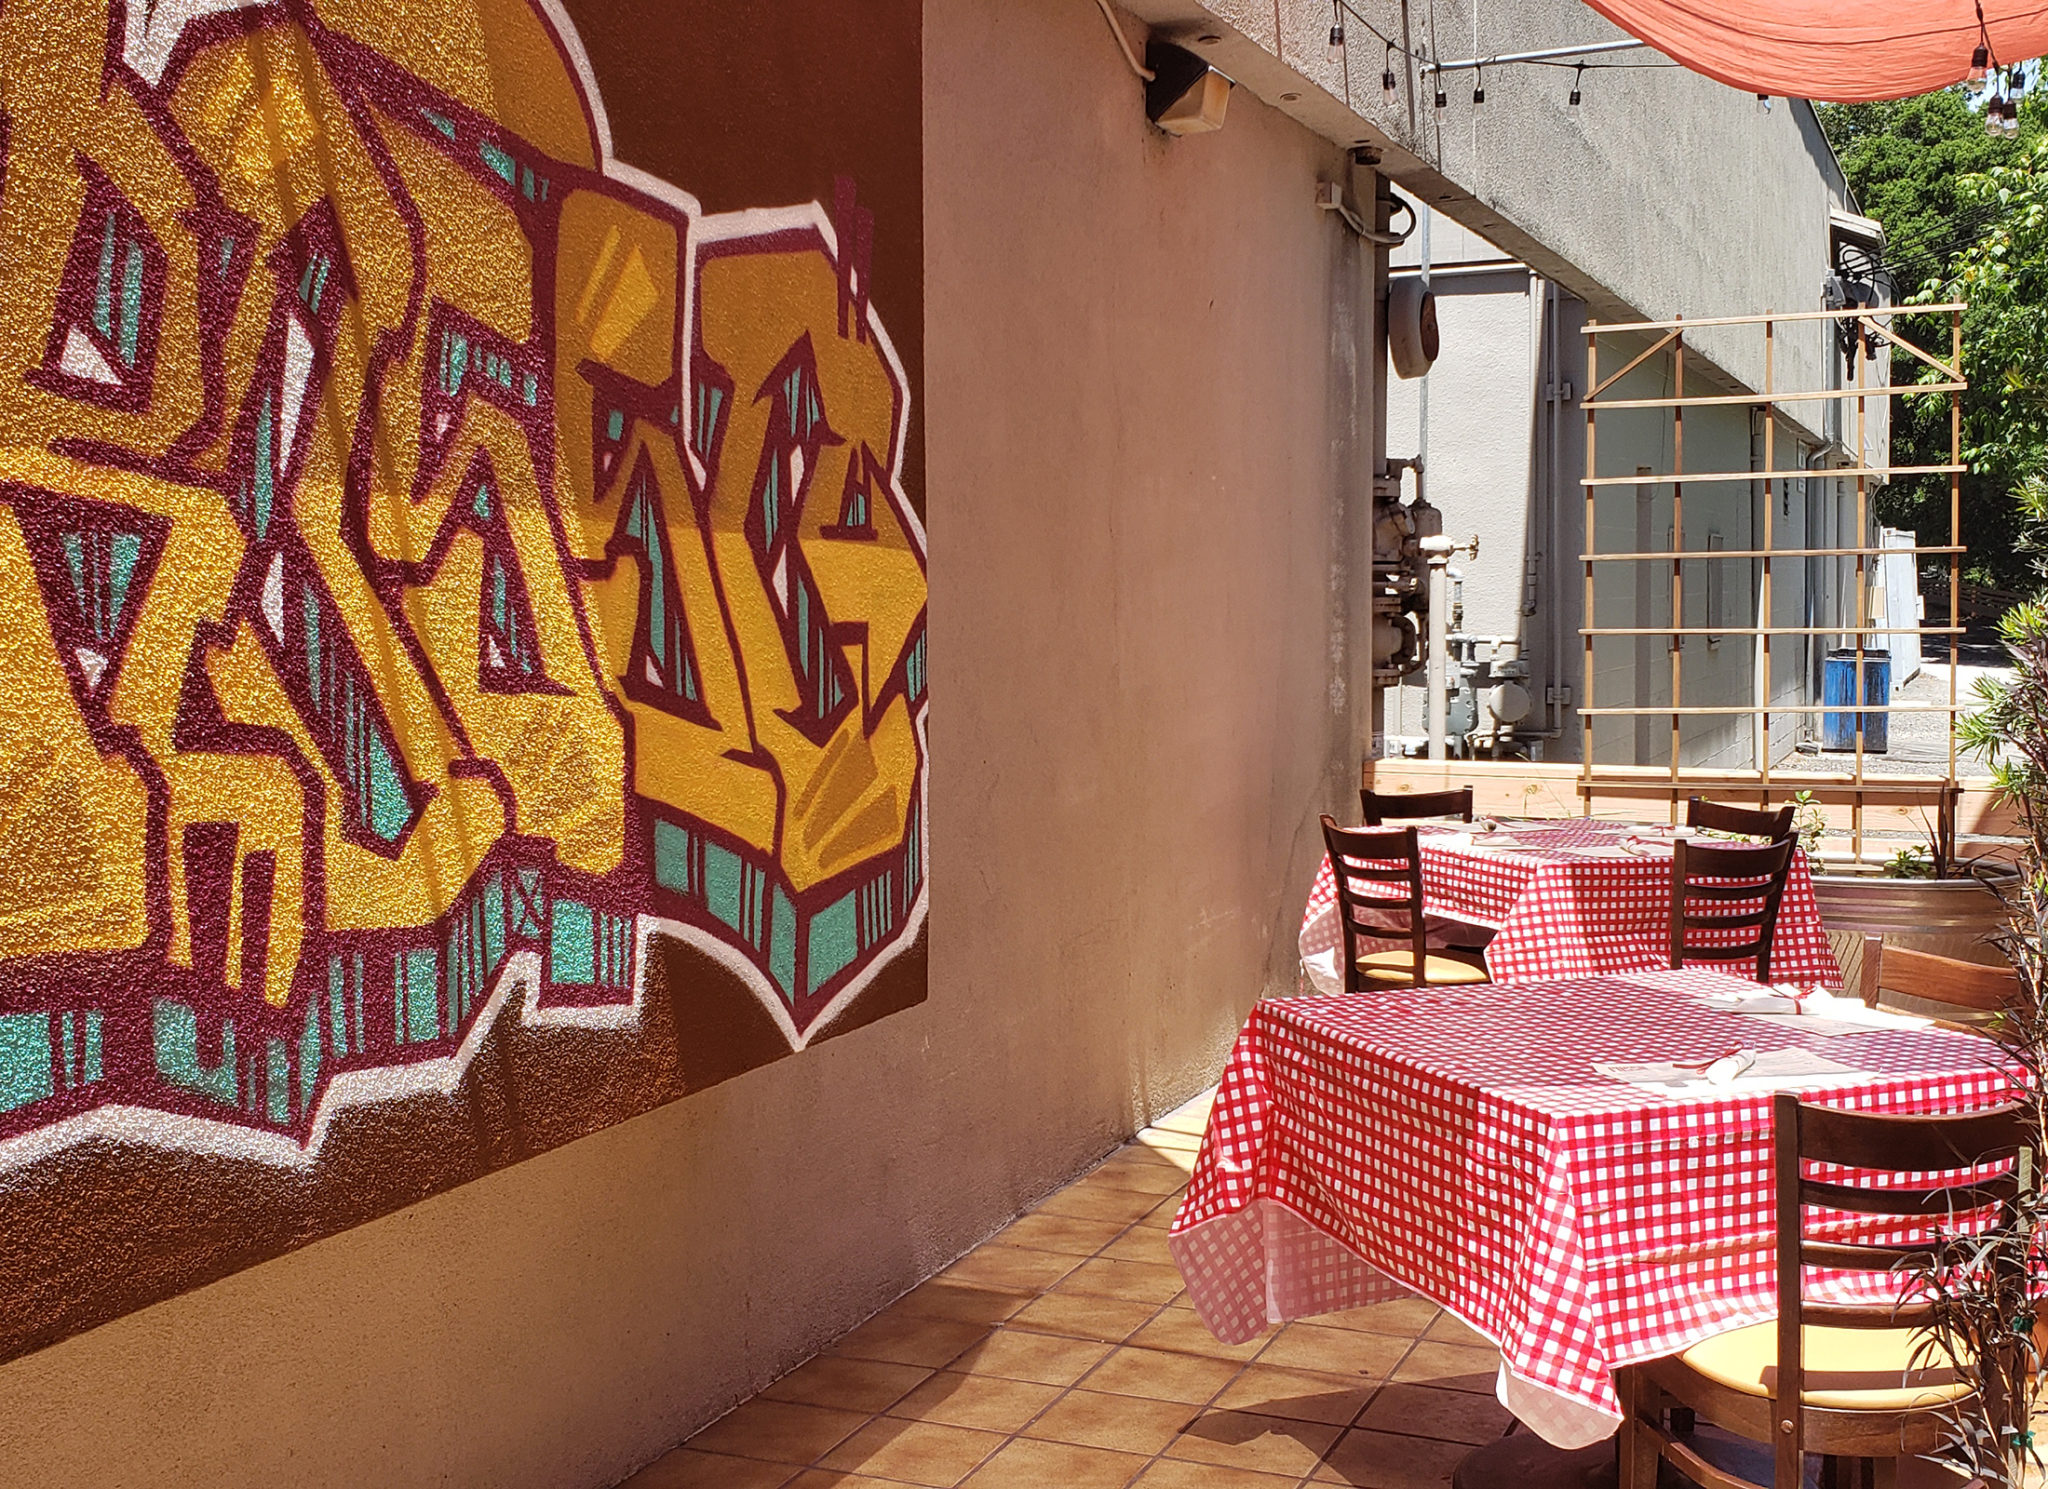 The new back porch at Rosso Pizzeria in Santa Rosa. The restaurant has reopened for patio dining. Heather Irwin/PD